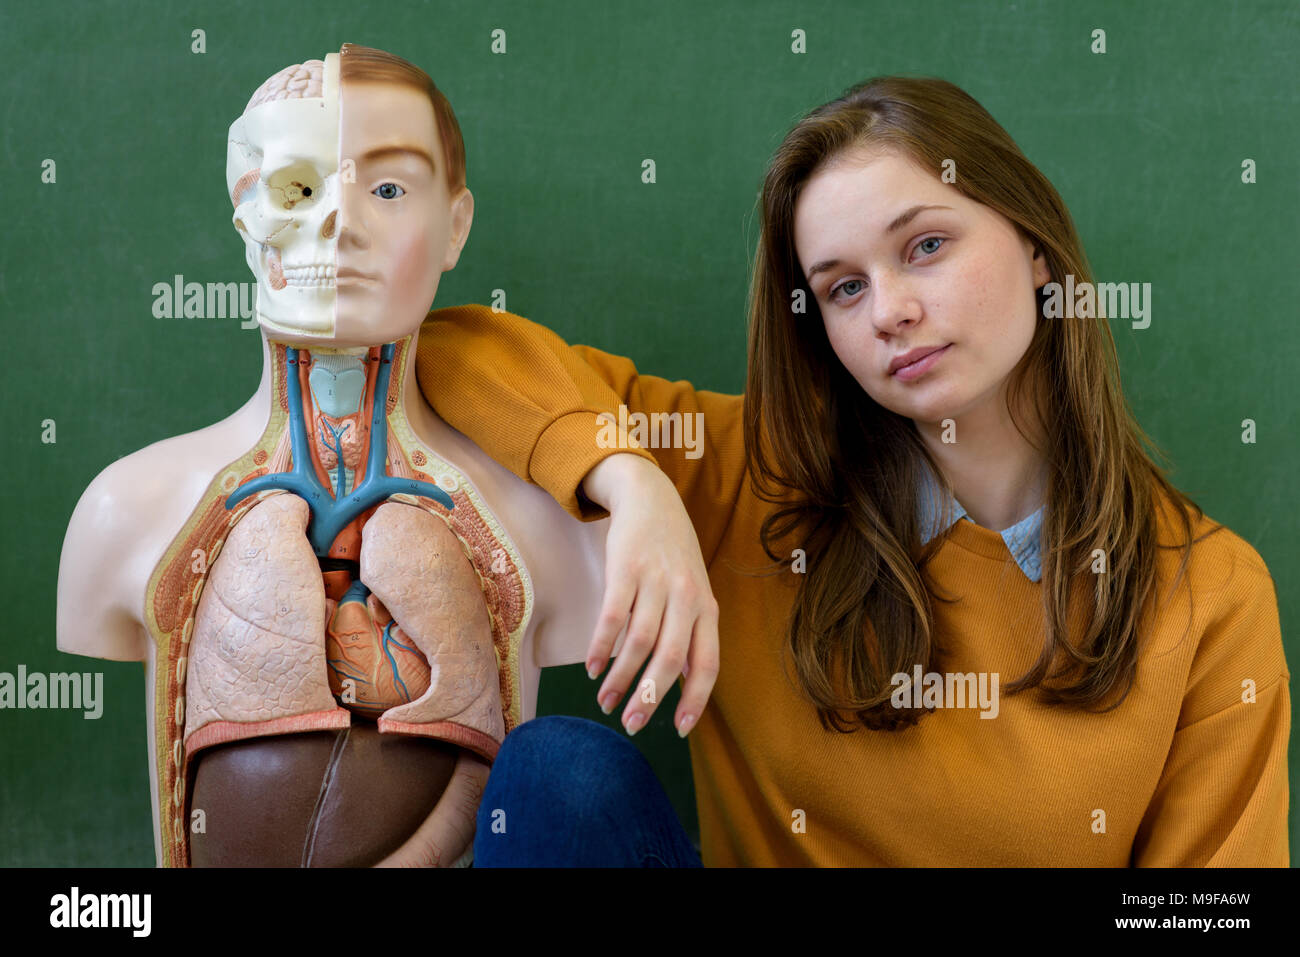 Cool female high school student portrait with an artificial human body model. Student having fun in Biology class. Education concept. - Stock Image